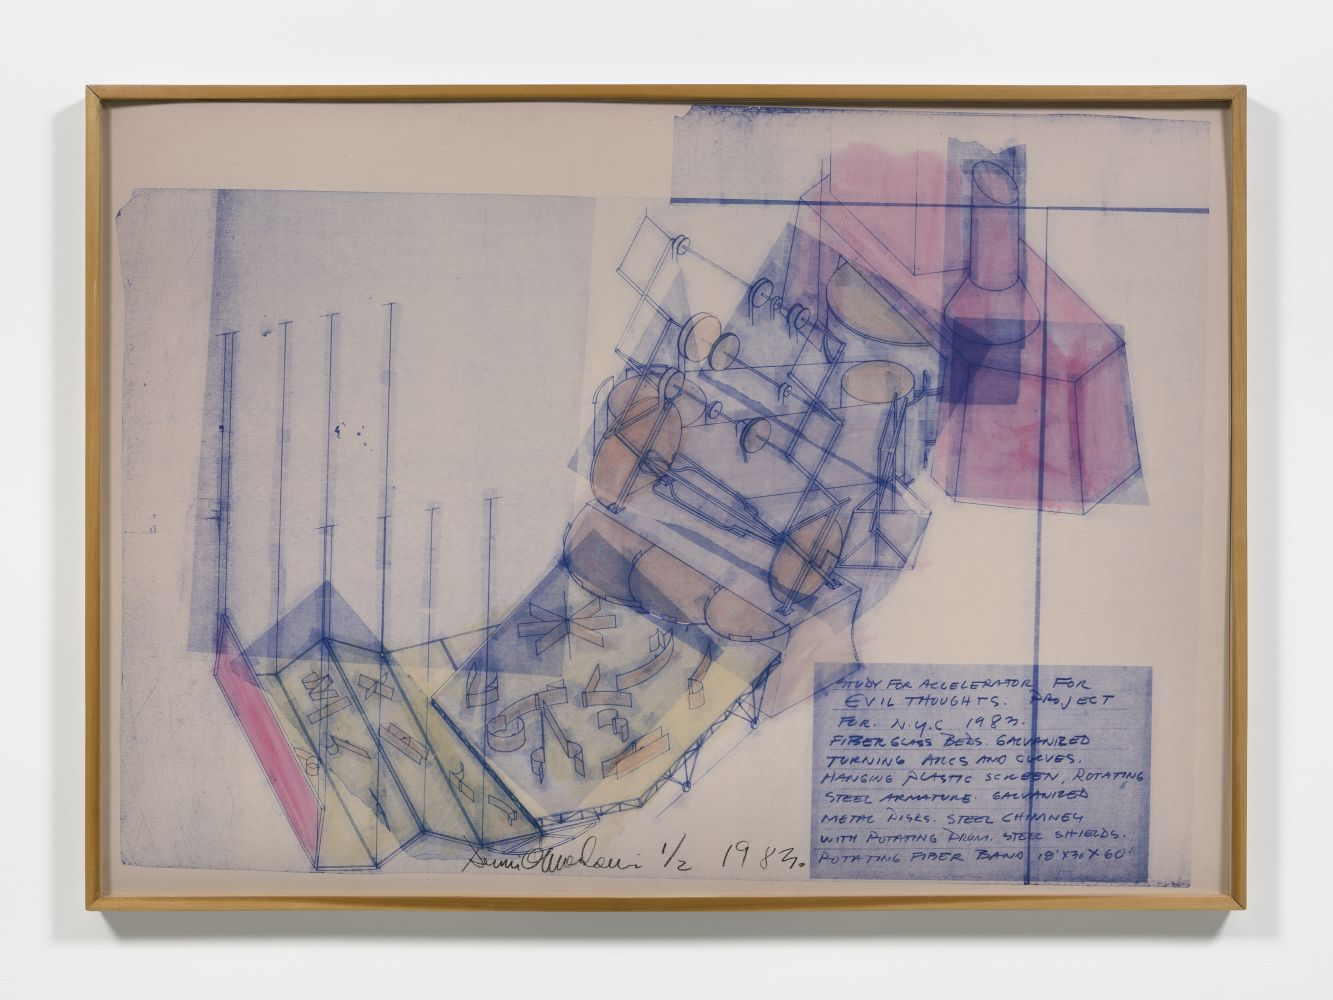 Blue and red hand tinted line print on linen depicting rotating sculpture by Dennis Oppenheim.